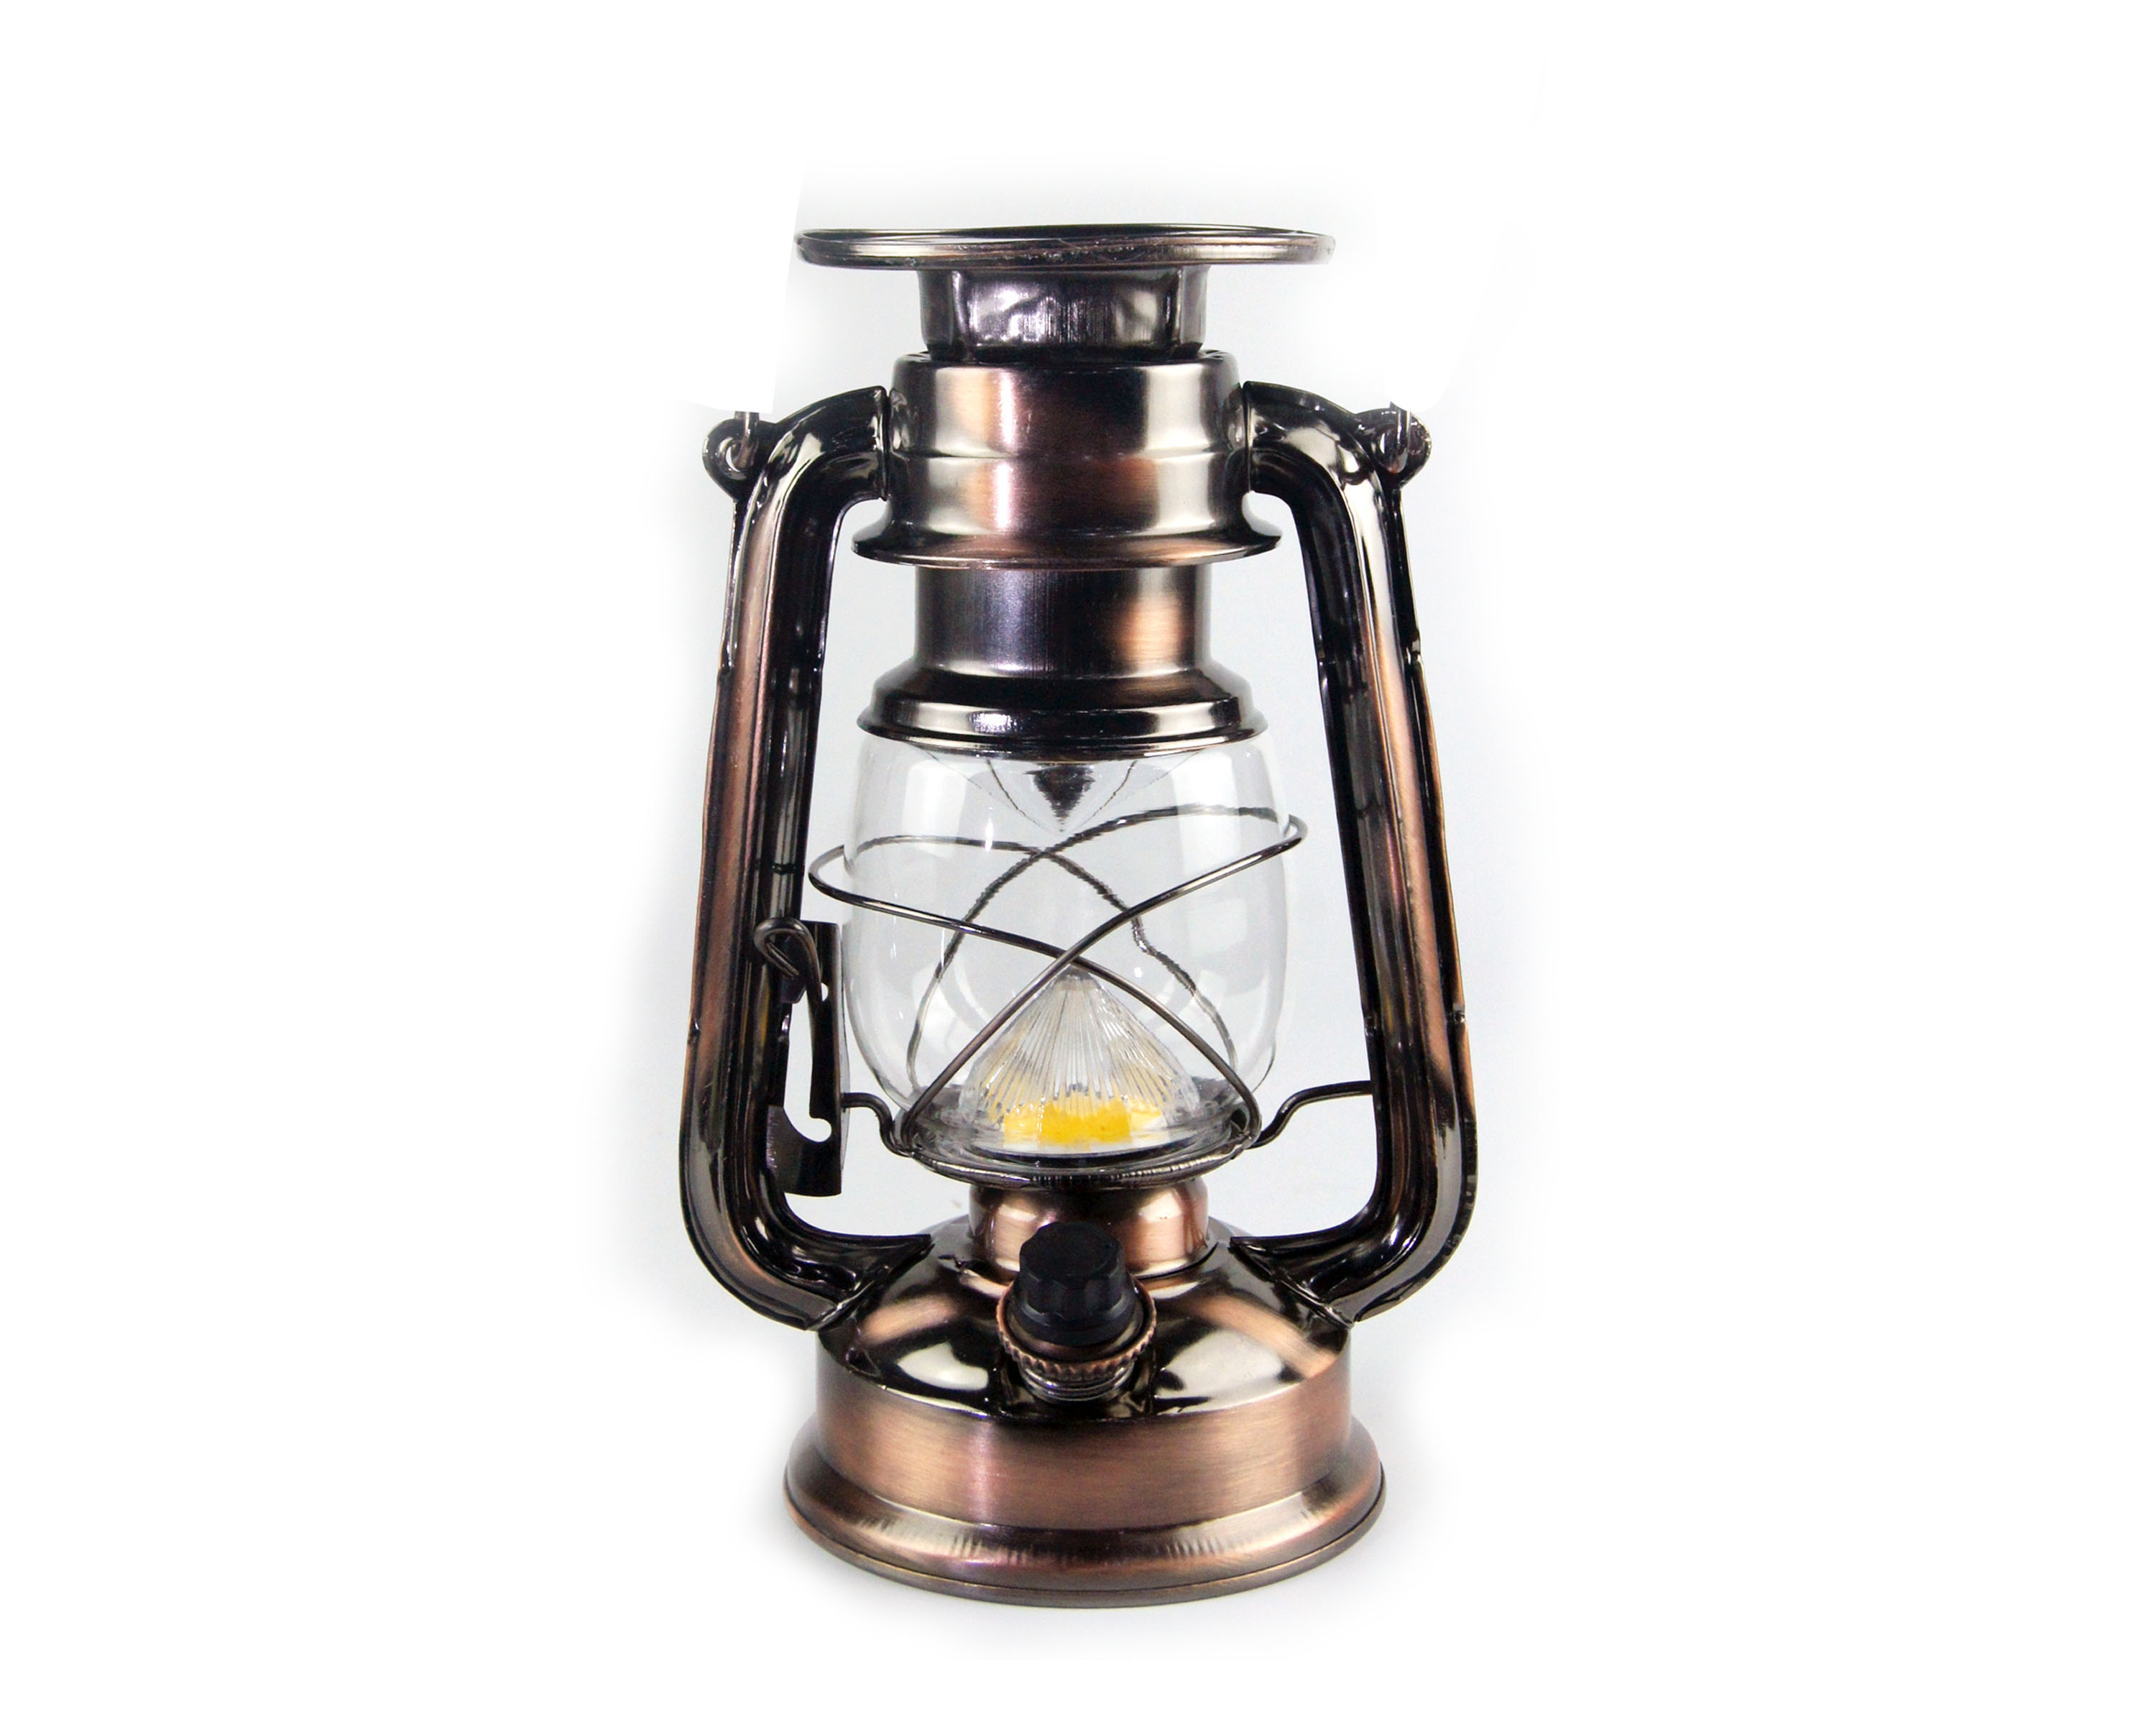 Outdoor Camping Light Flam Camp Light Waterproof Tent Camping Light Garden Decoration Lantern Buy Camp Light Copper Plated High Quality Wall Lamp Led Creative Home Lighting Ningbo Factory Made Outdoor Standby Camping